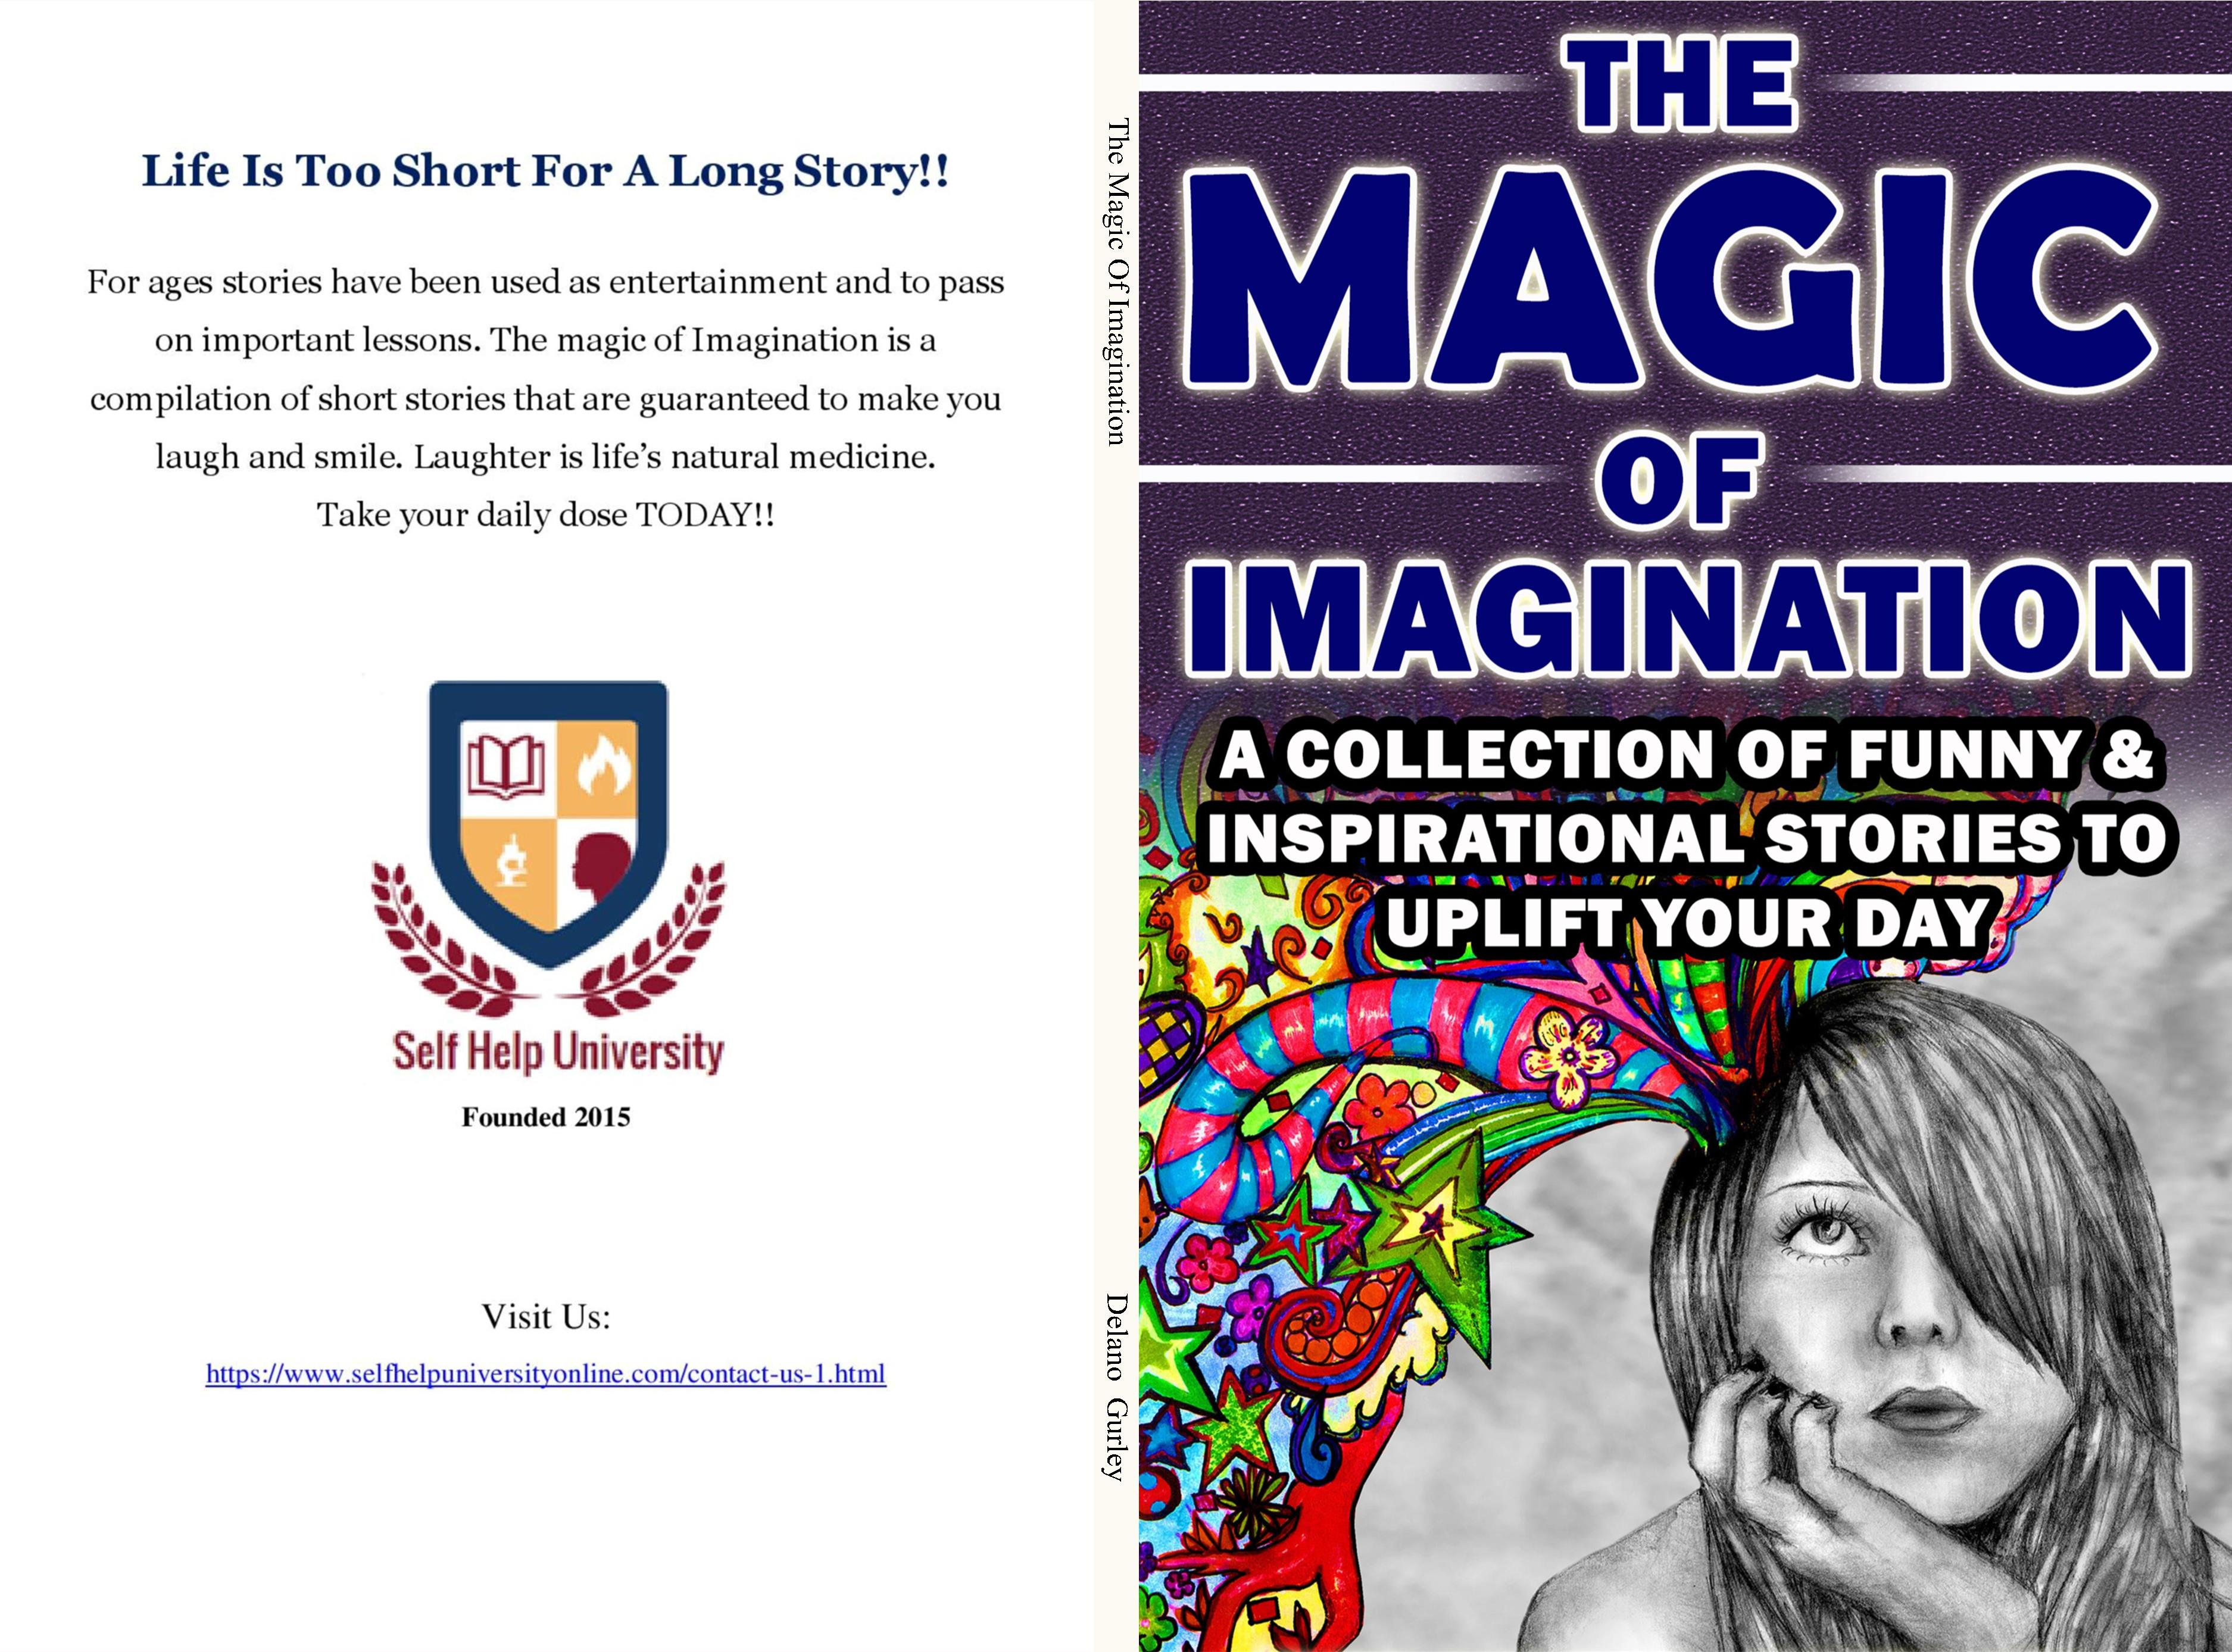 The Magic Of Imagination - A Collection of Funny